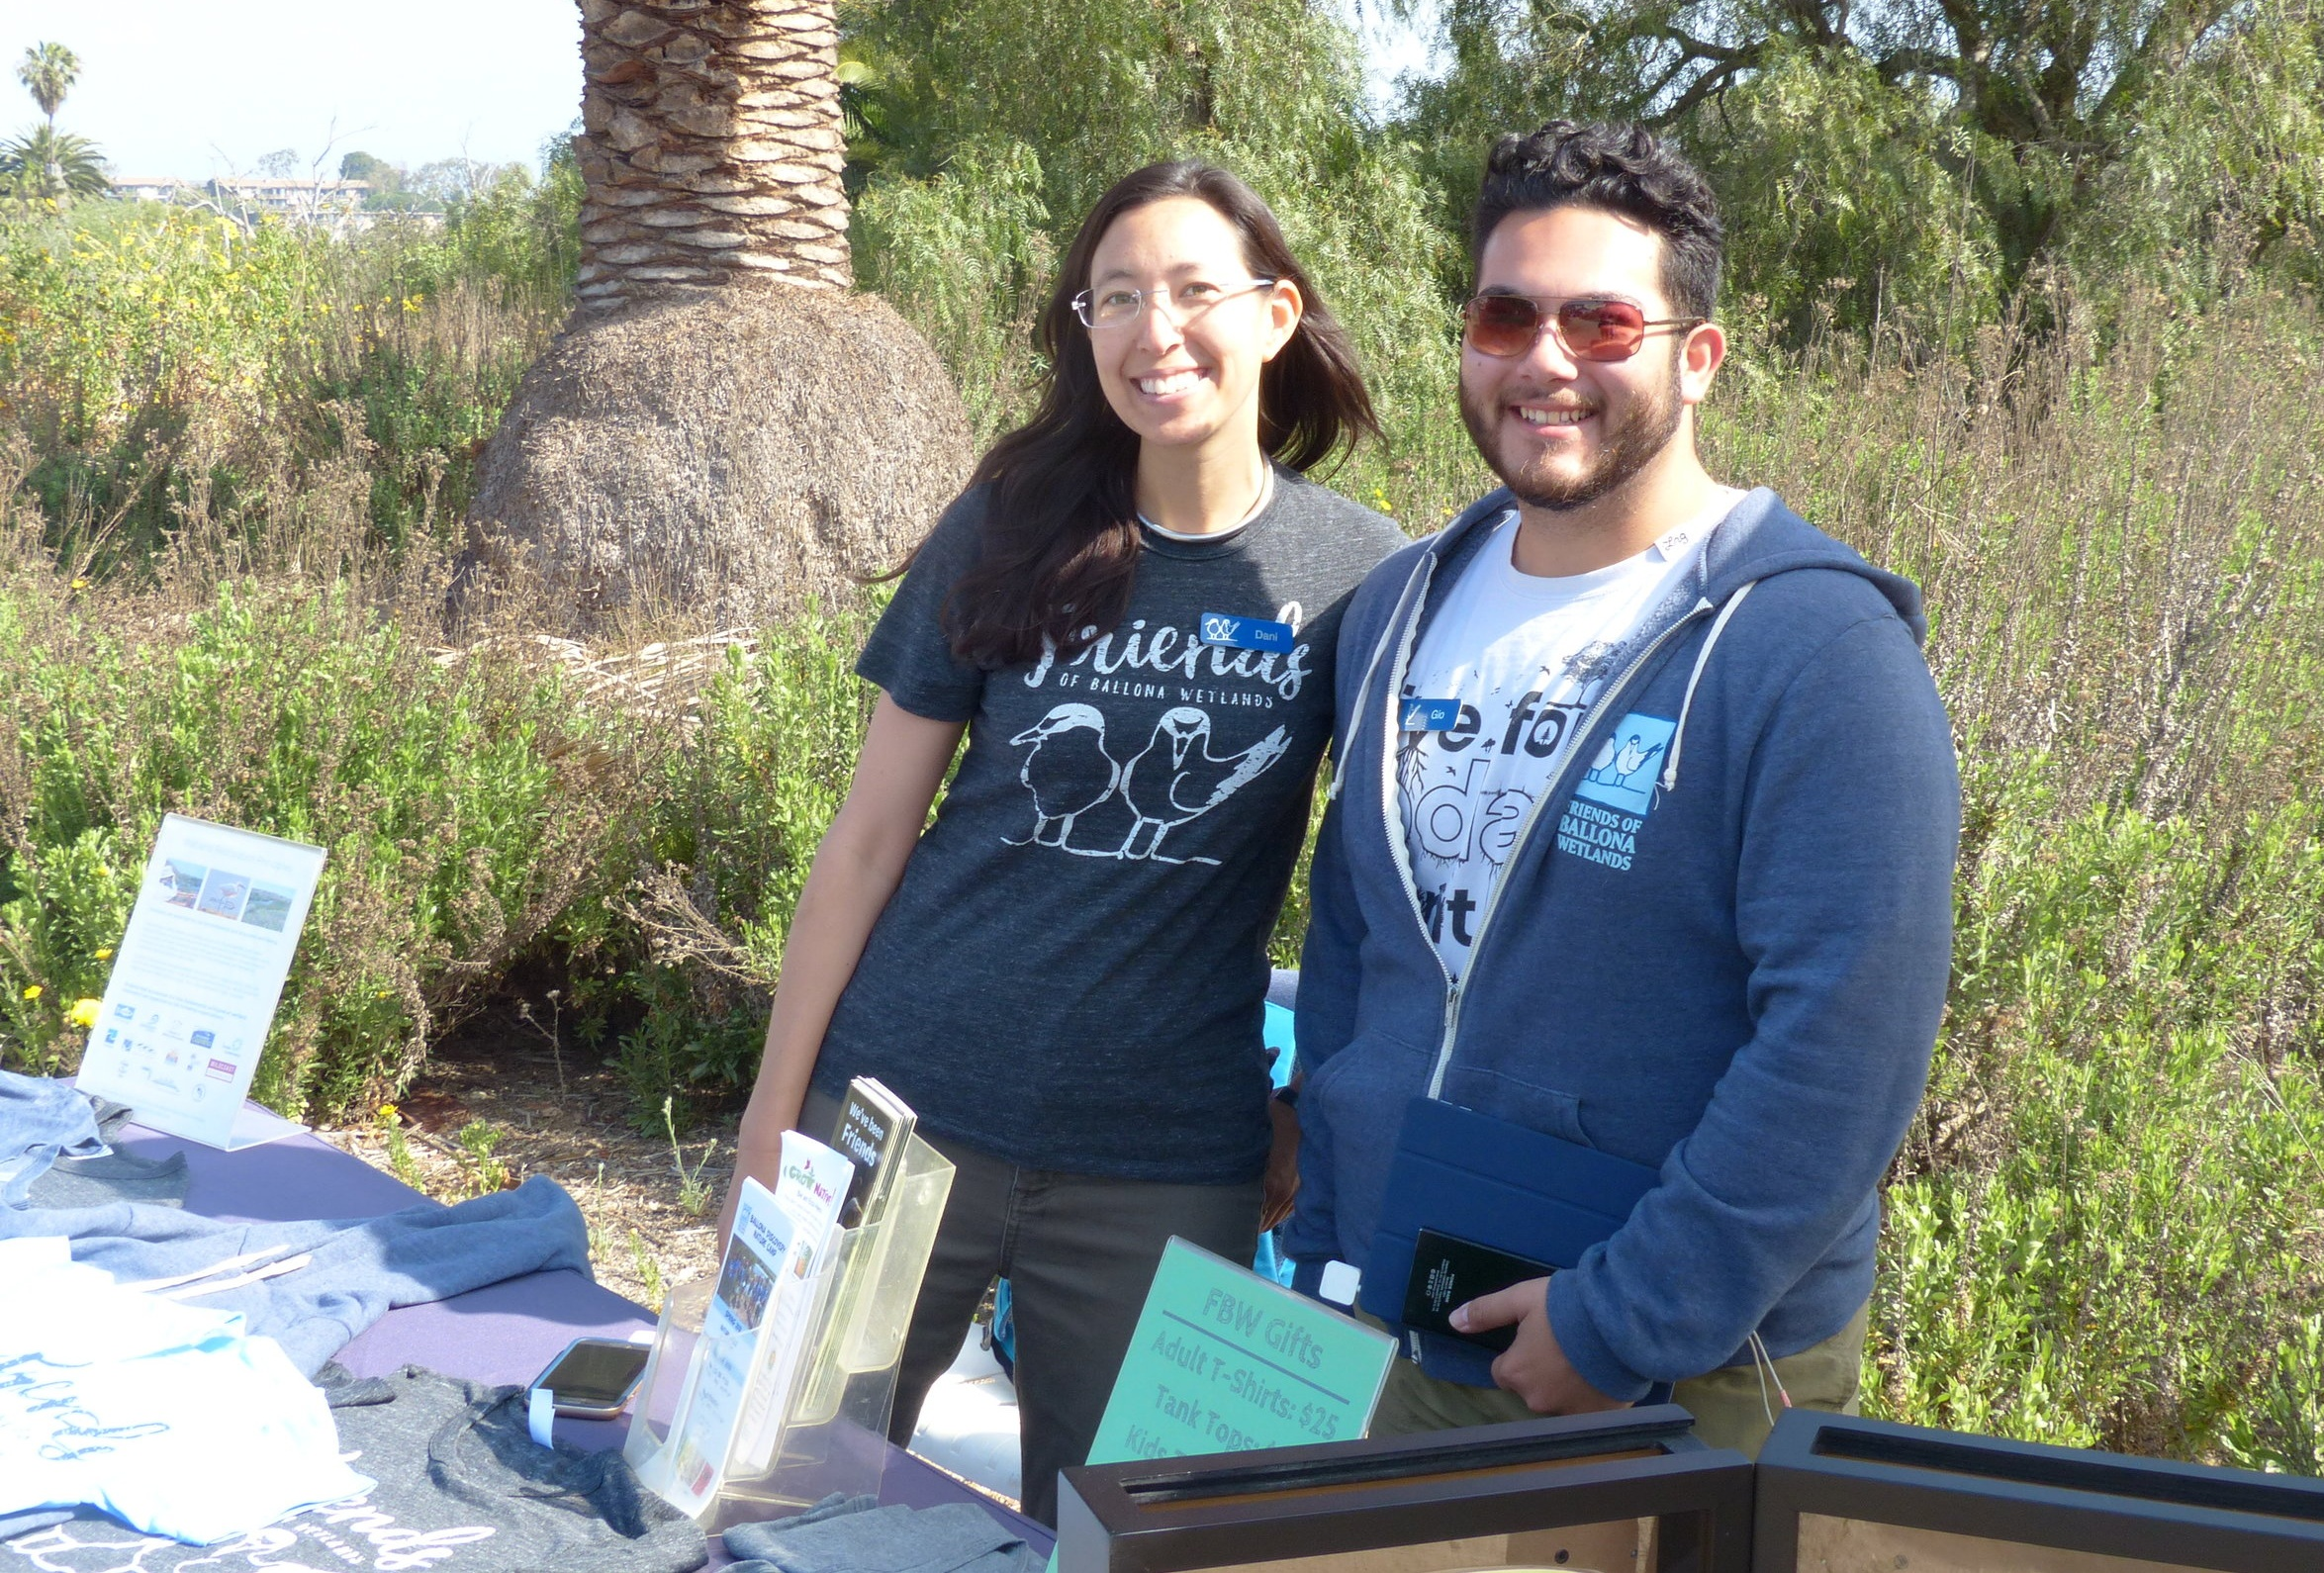 Friends of Ballona Wetlands Intern at a community event